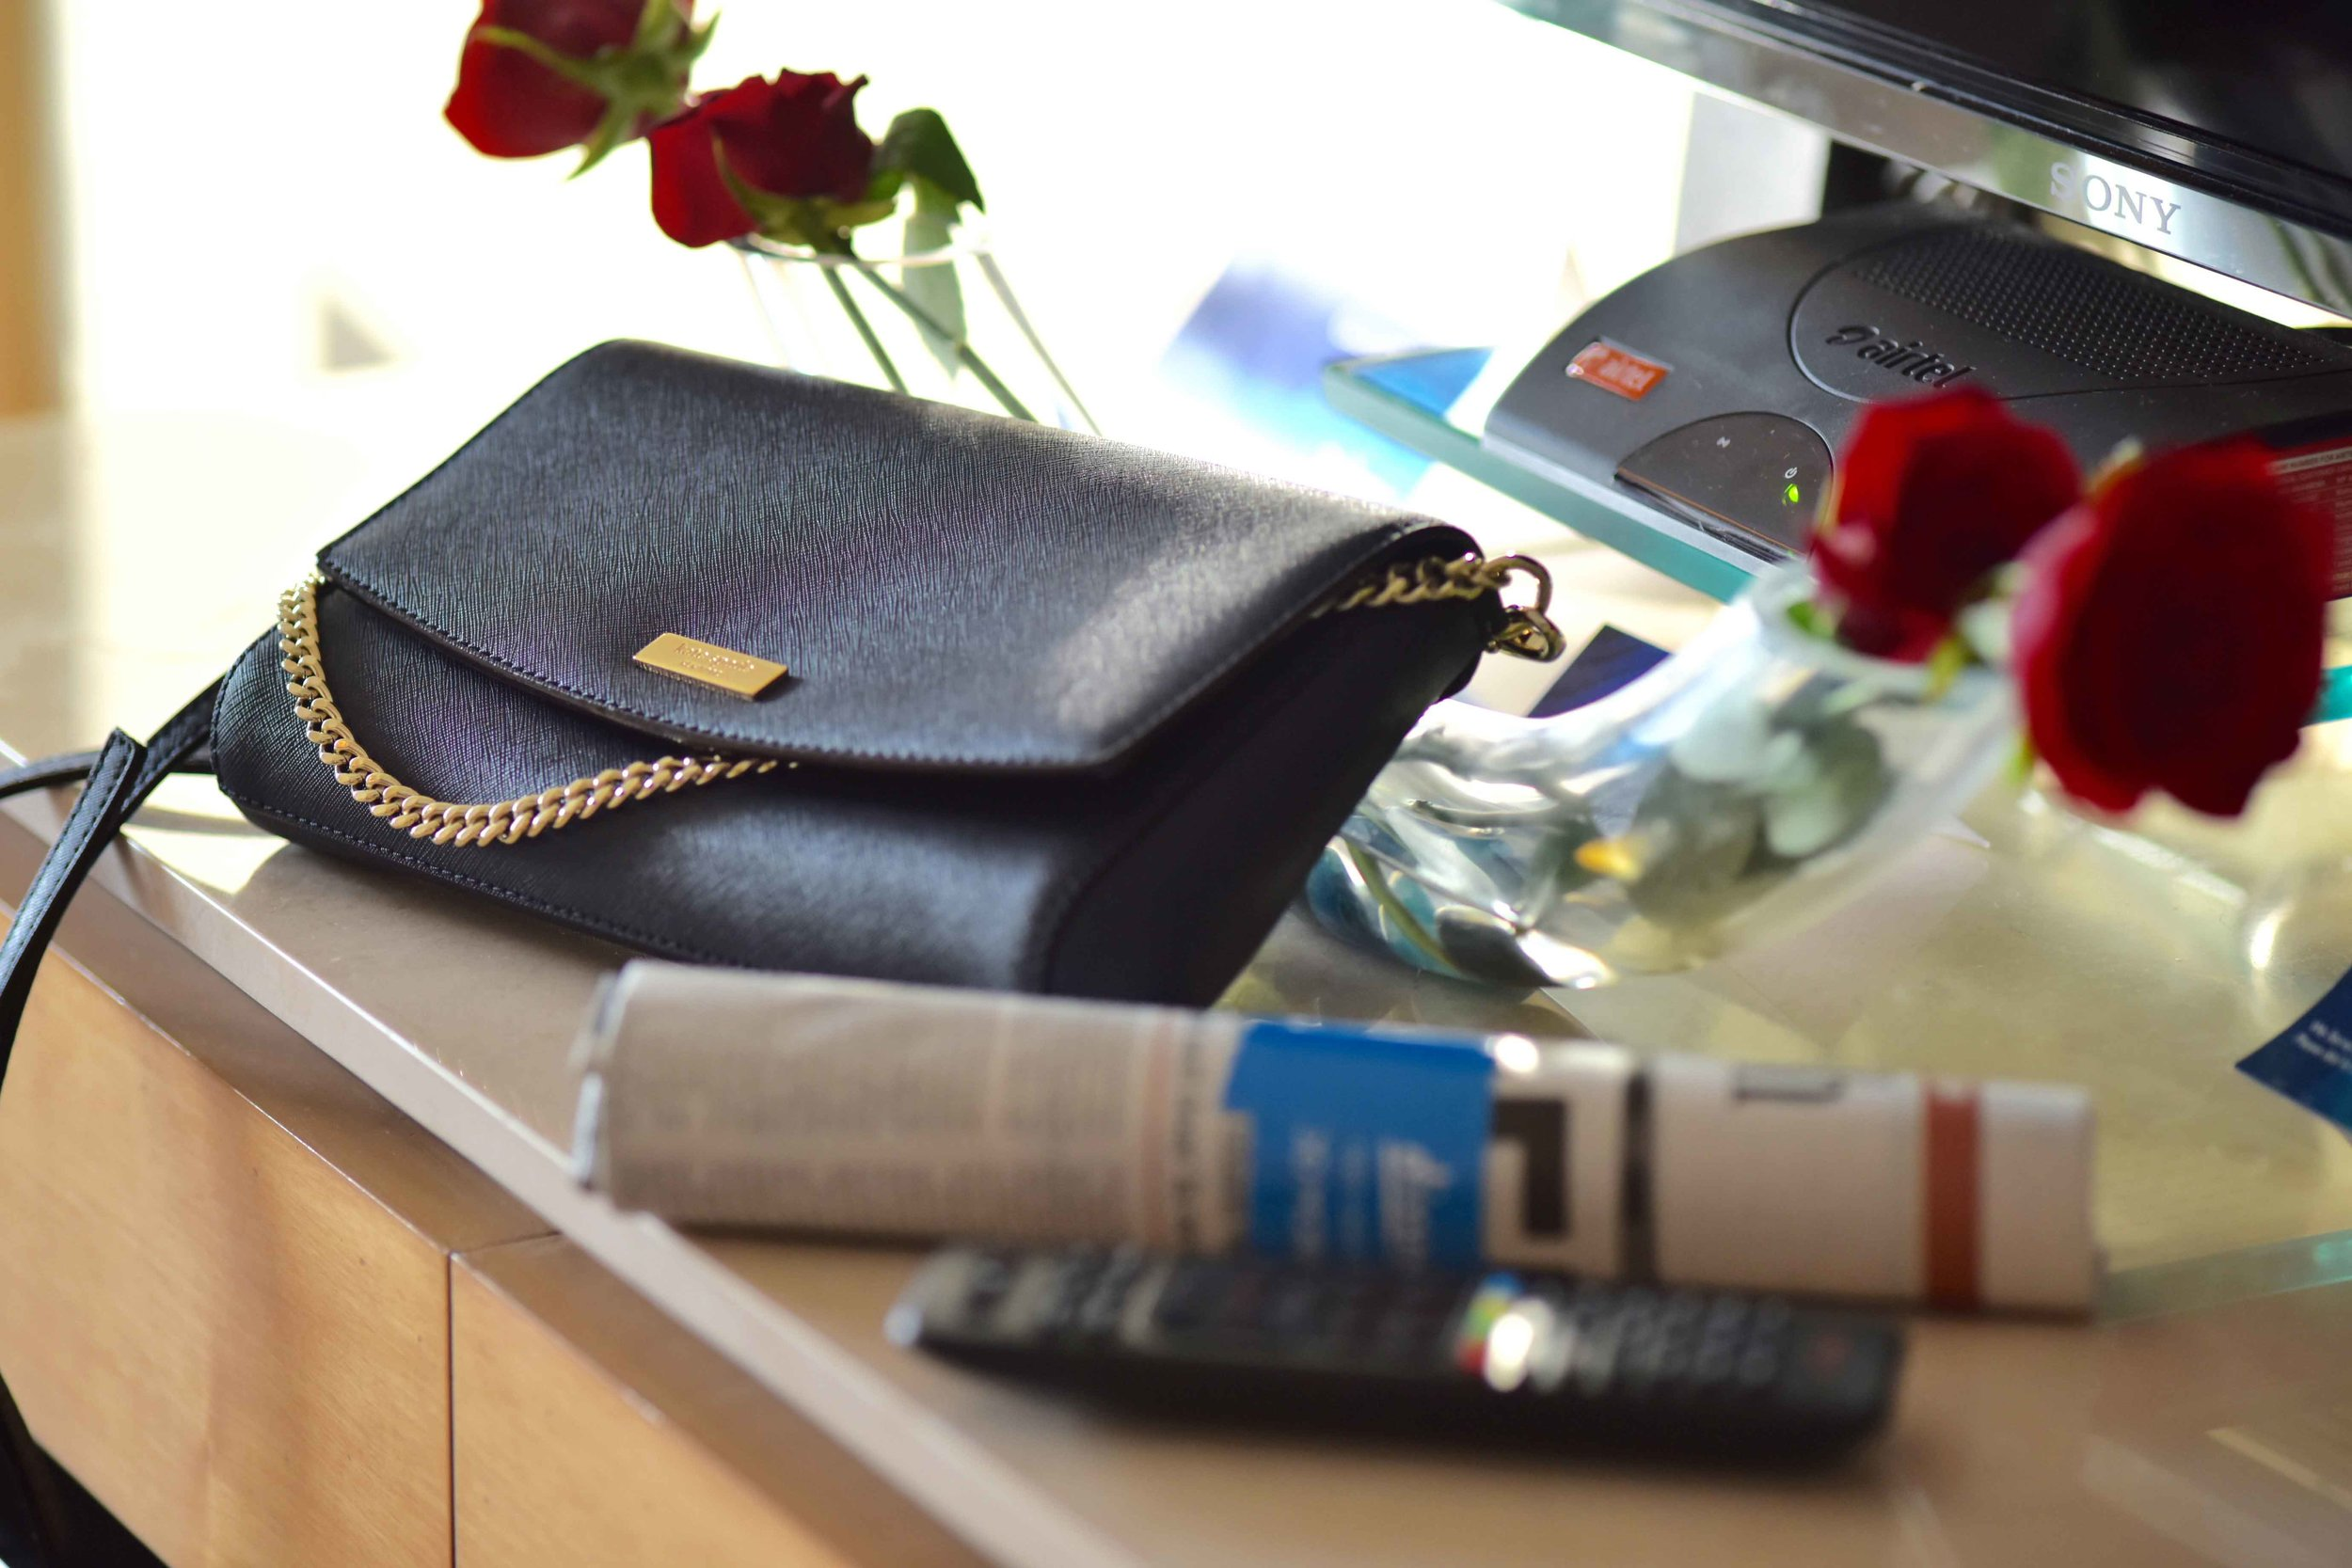 Radisson Blu Hotel, red roses in the room, bag is Kate Spade, Ranchi, Jharkhand, India. Image©sourcingstyle.com.